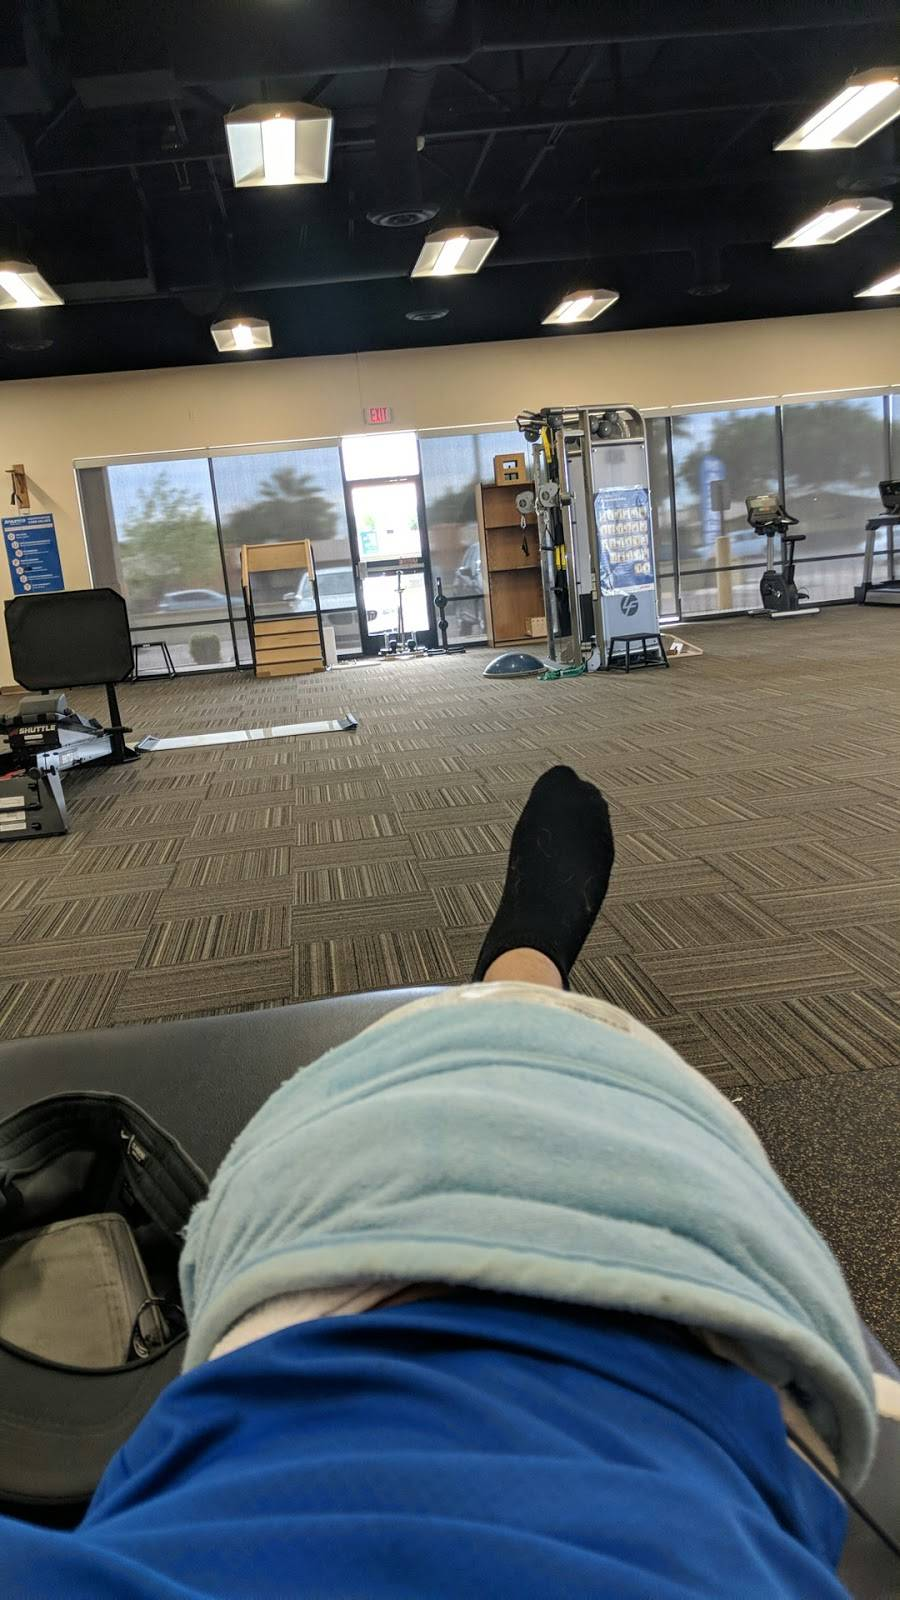 Athletico Physical Therapy - Mesa West - physiotherapist  | Photo 5 of 8 | Address: 425 N Stapley Dr UNIT 105, Mesa, AZ 85203, USA | Phone: (480) 729-8317